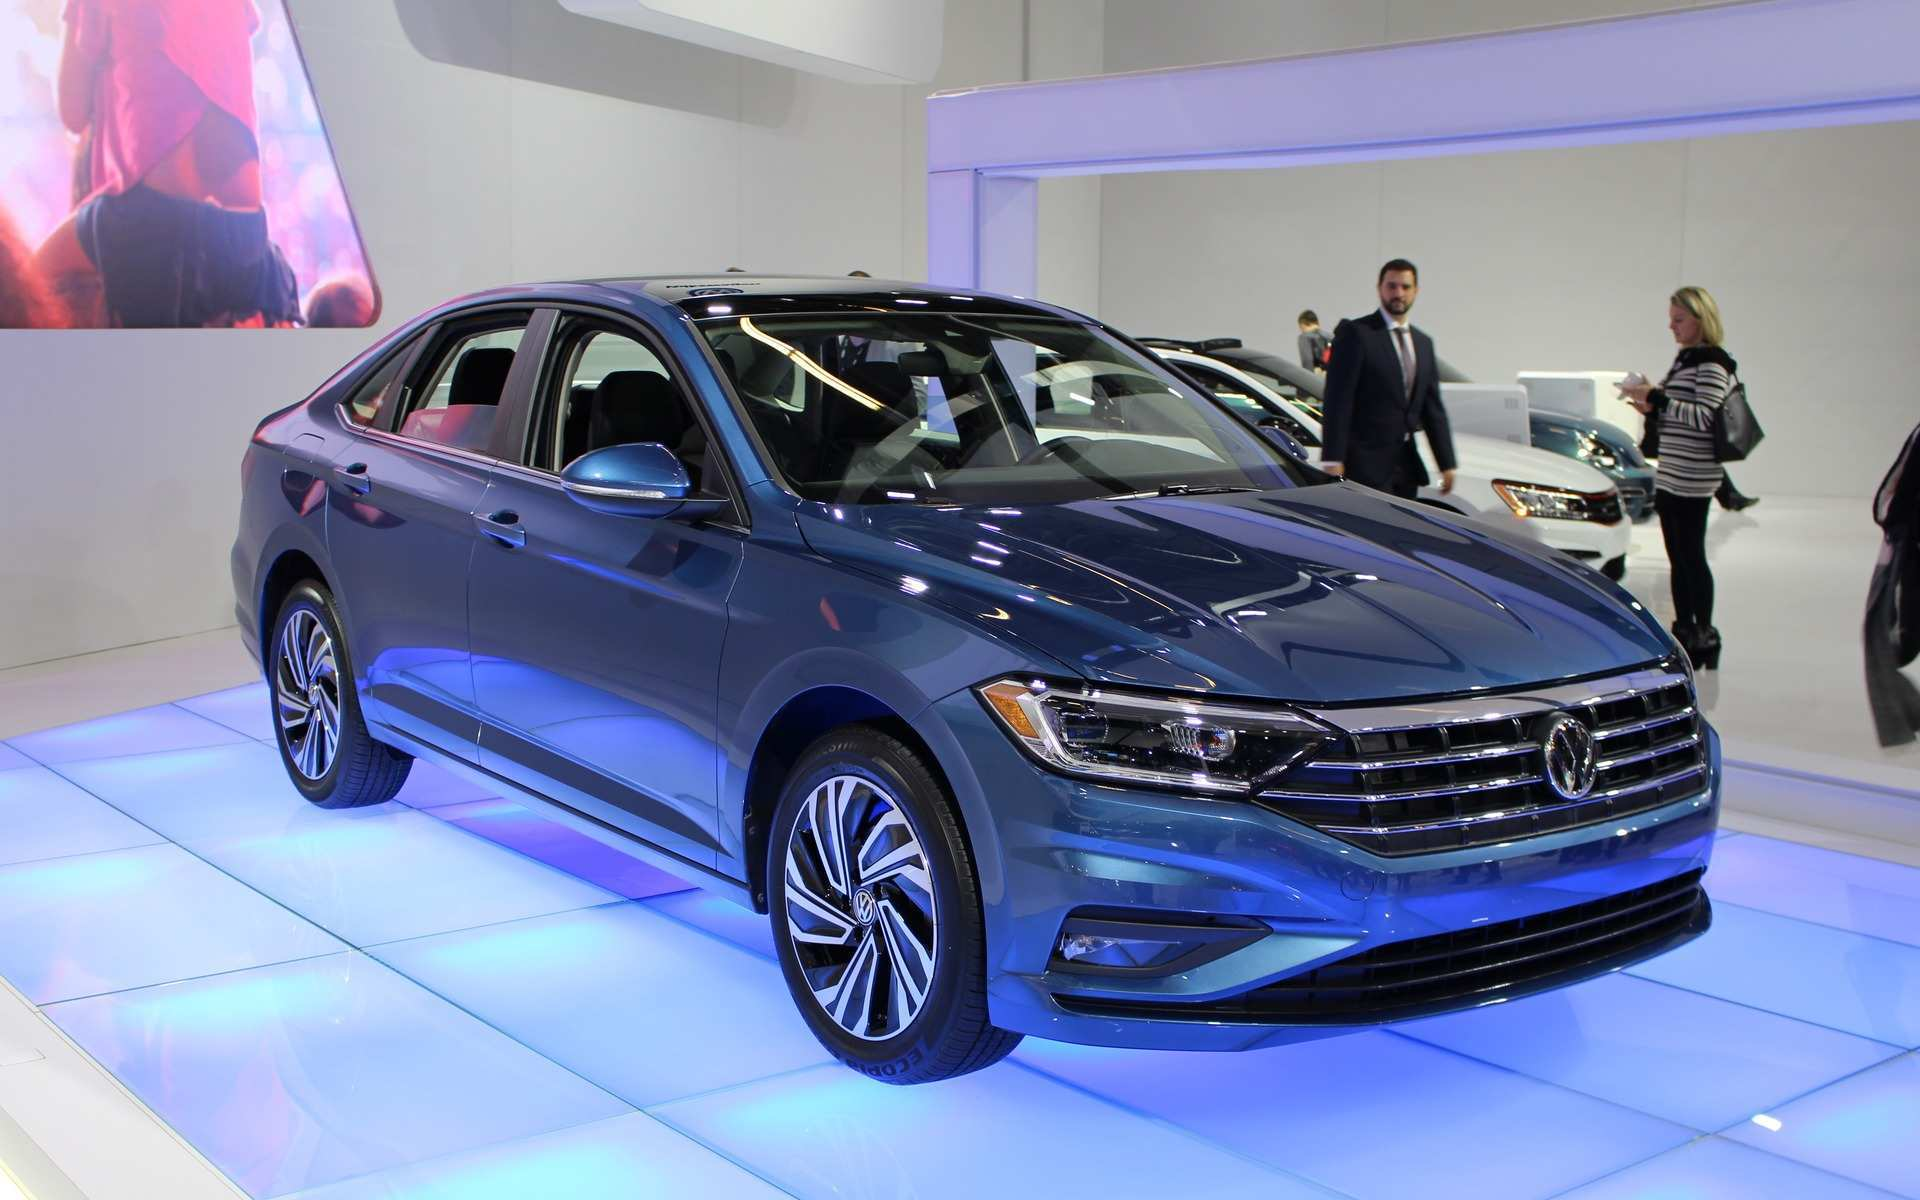 45 All New Vw Jetta 2019 Canada Redesign and Concept with Vw Jetta 2019 Canada